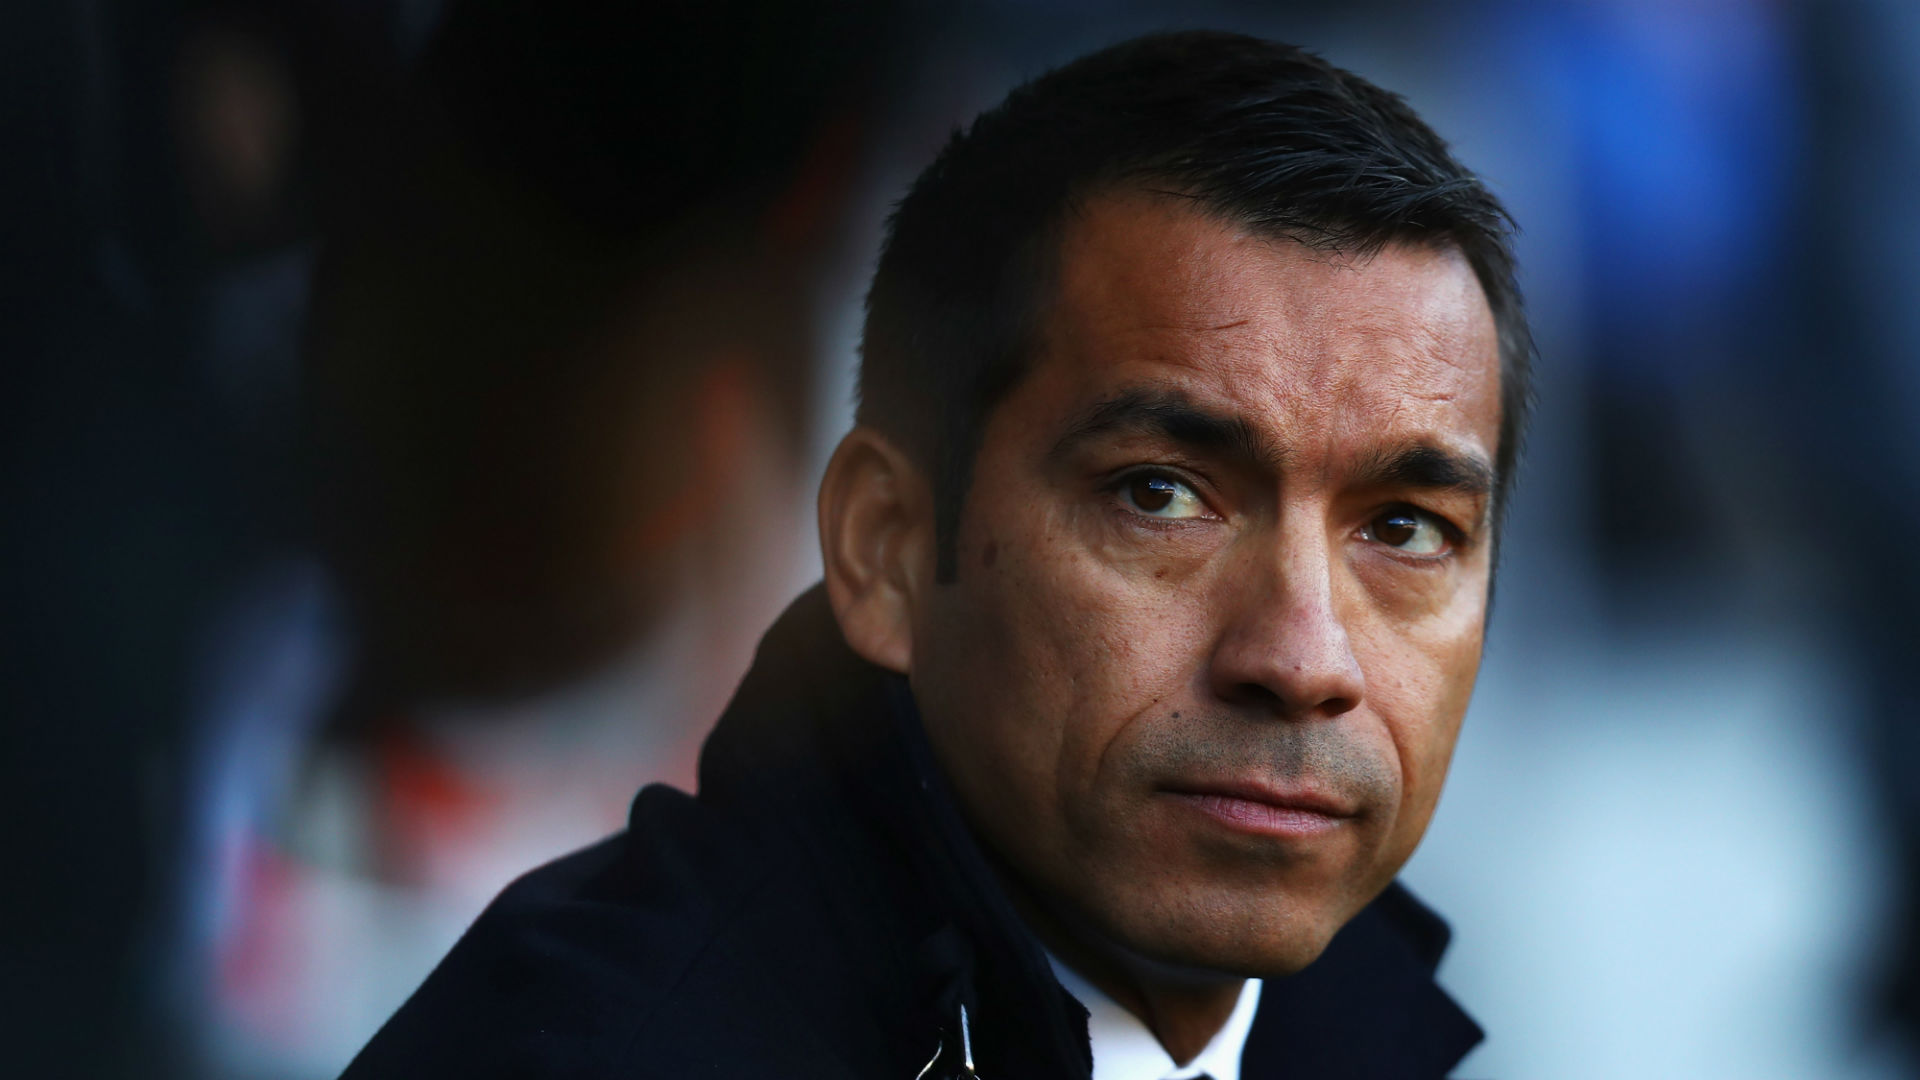 Van Bronckhorst dreams of Arsenal job as he makes Premier League ambitions clear